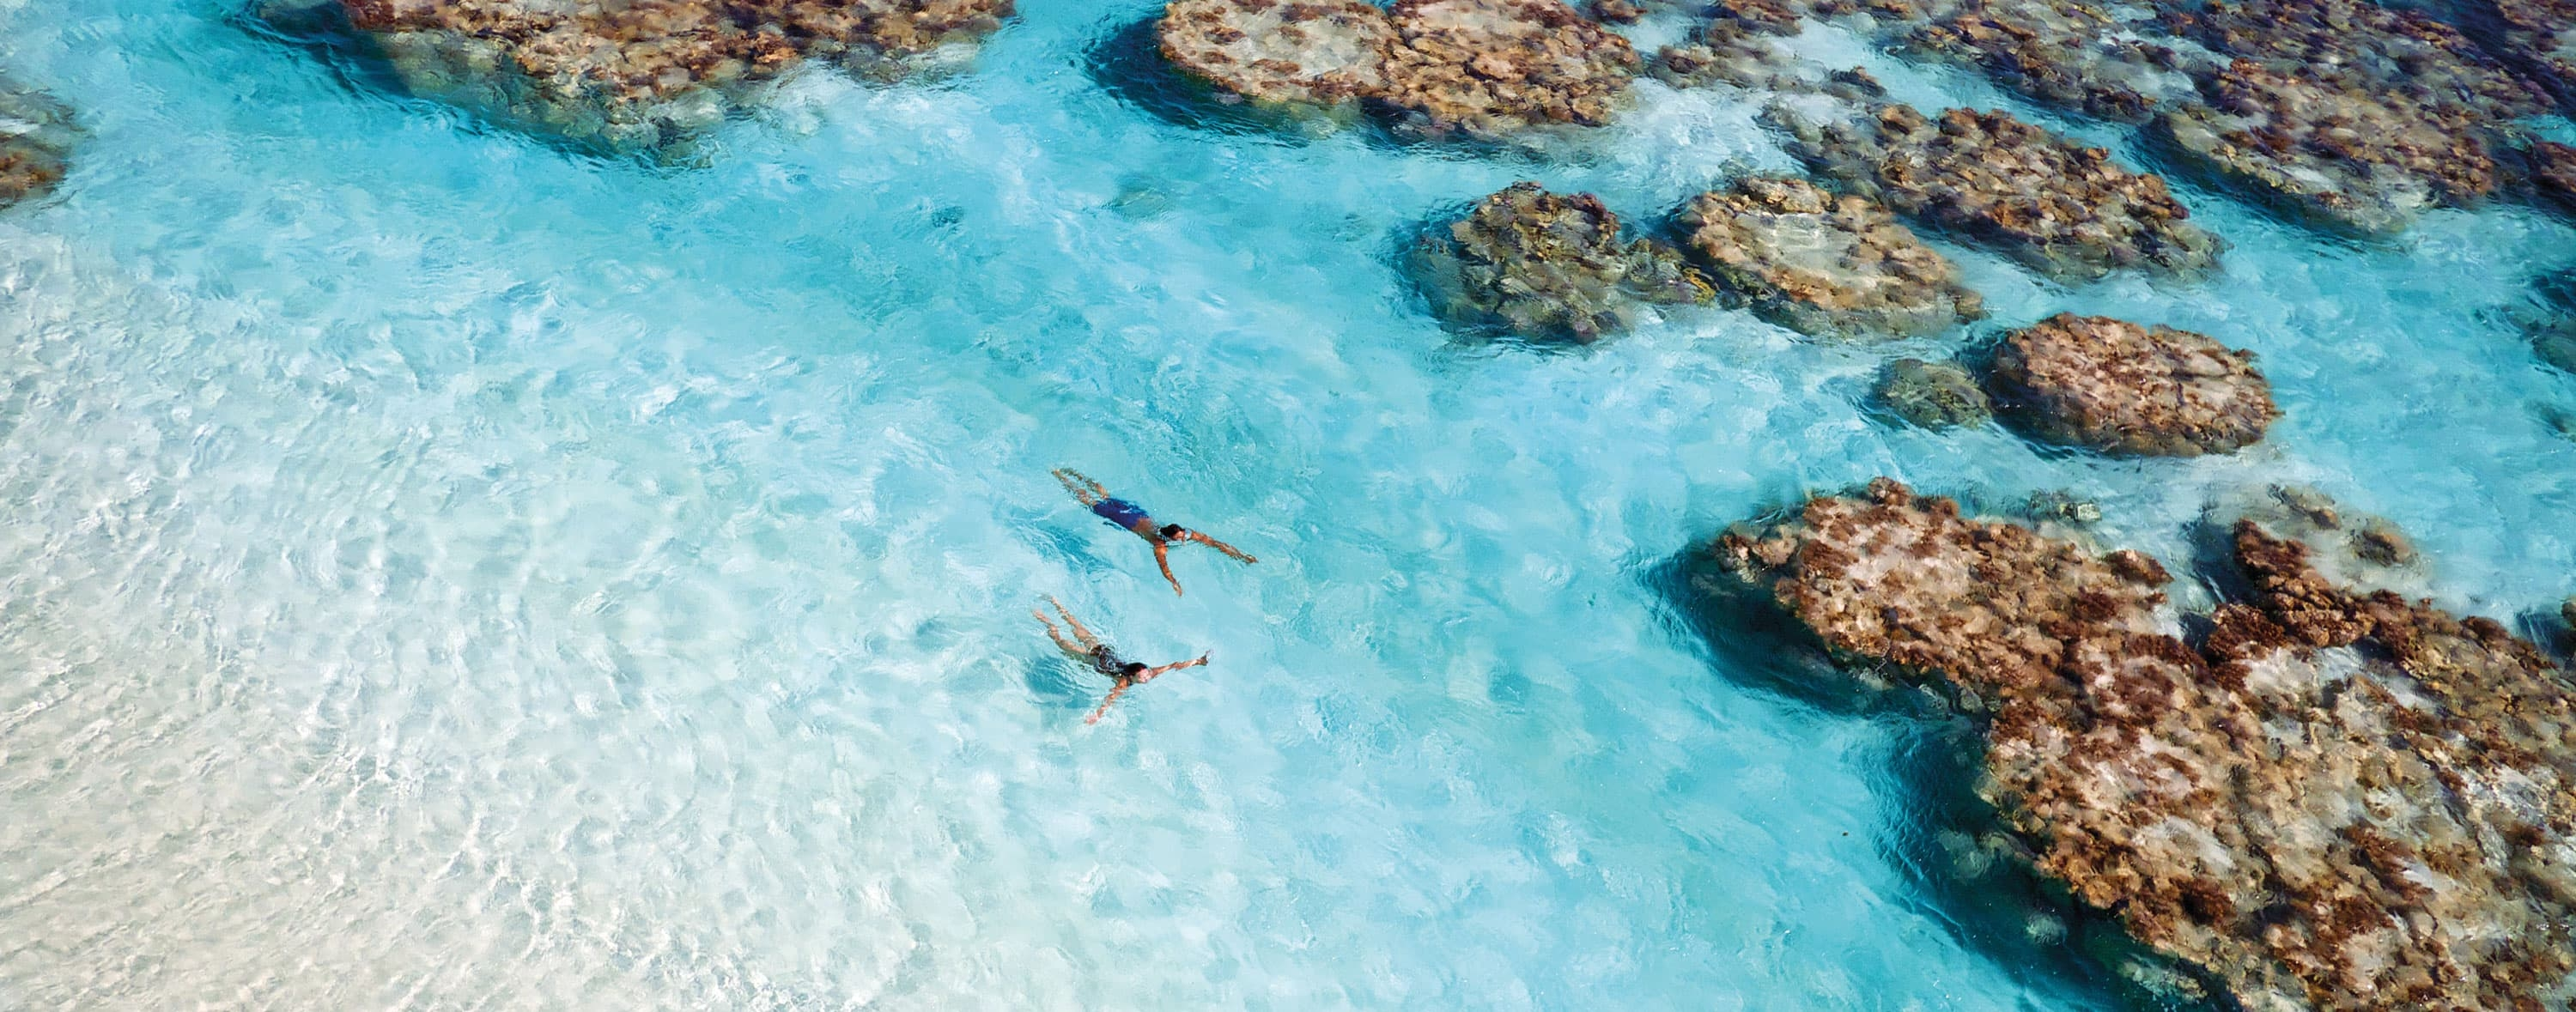 Island hop around French Polynesia for a slice of pure paradise